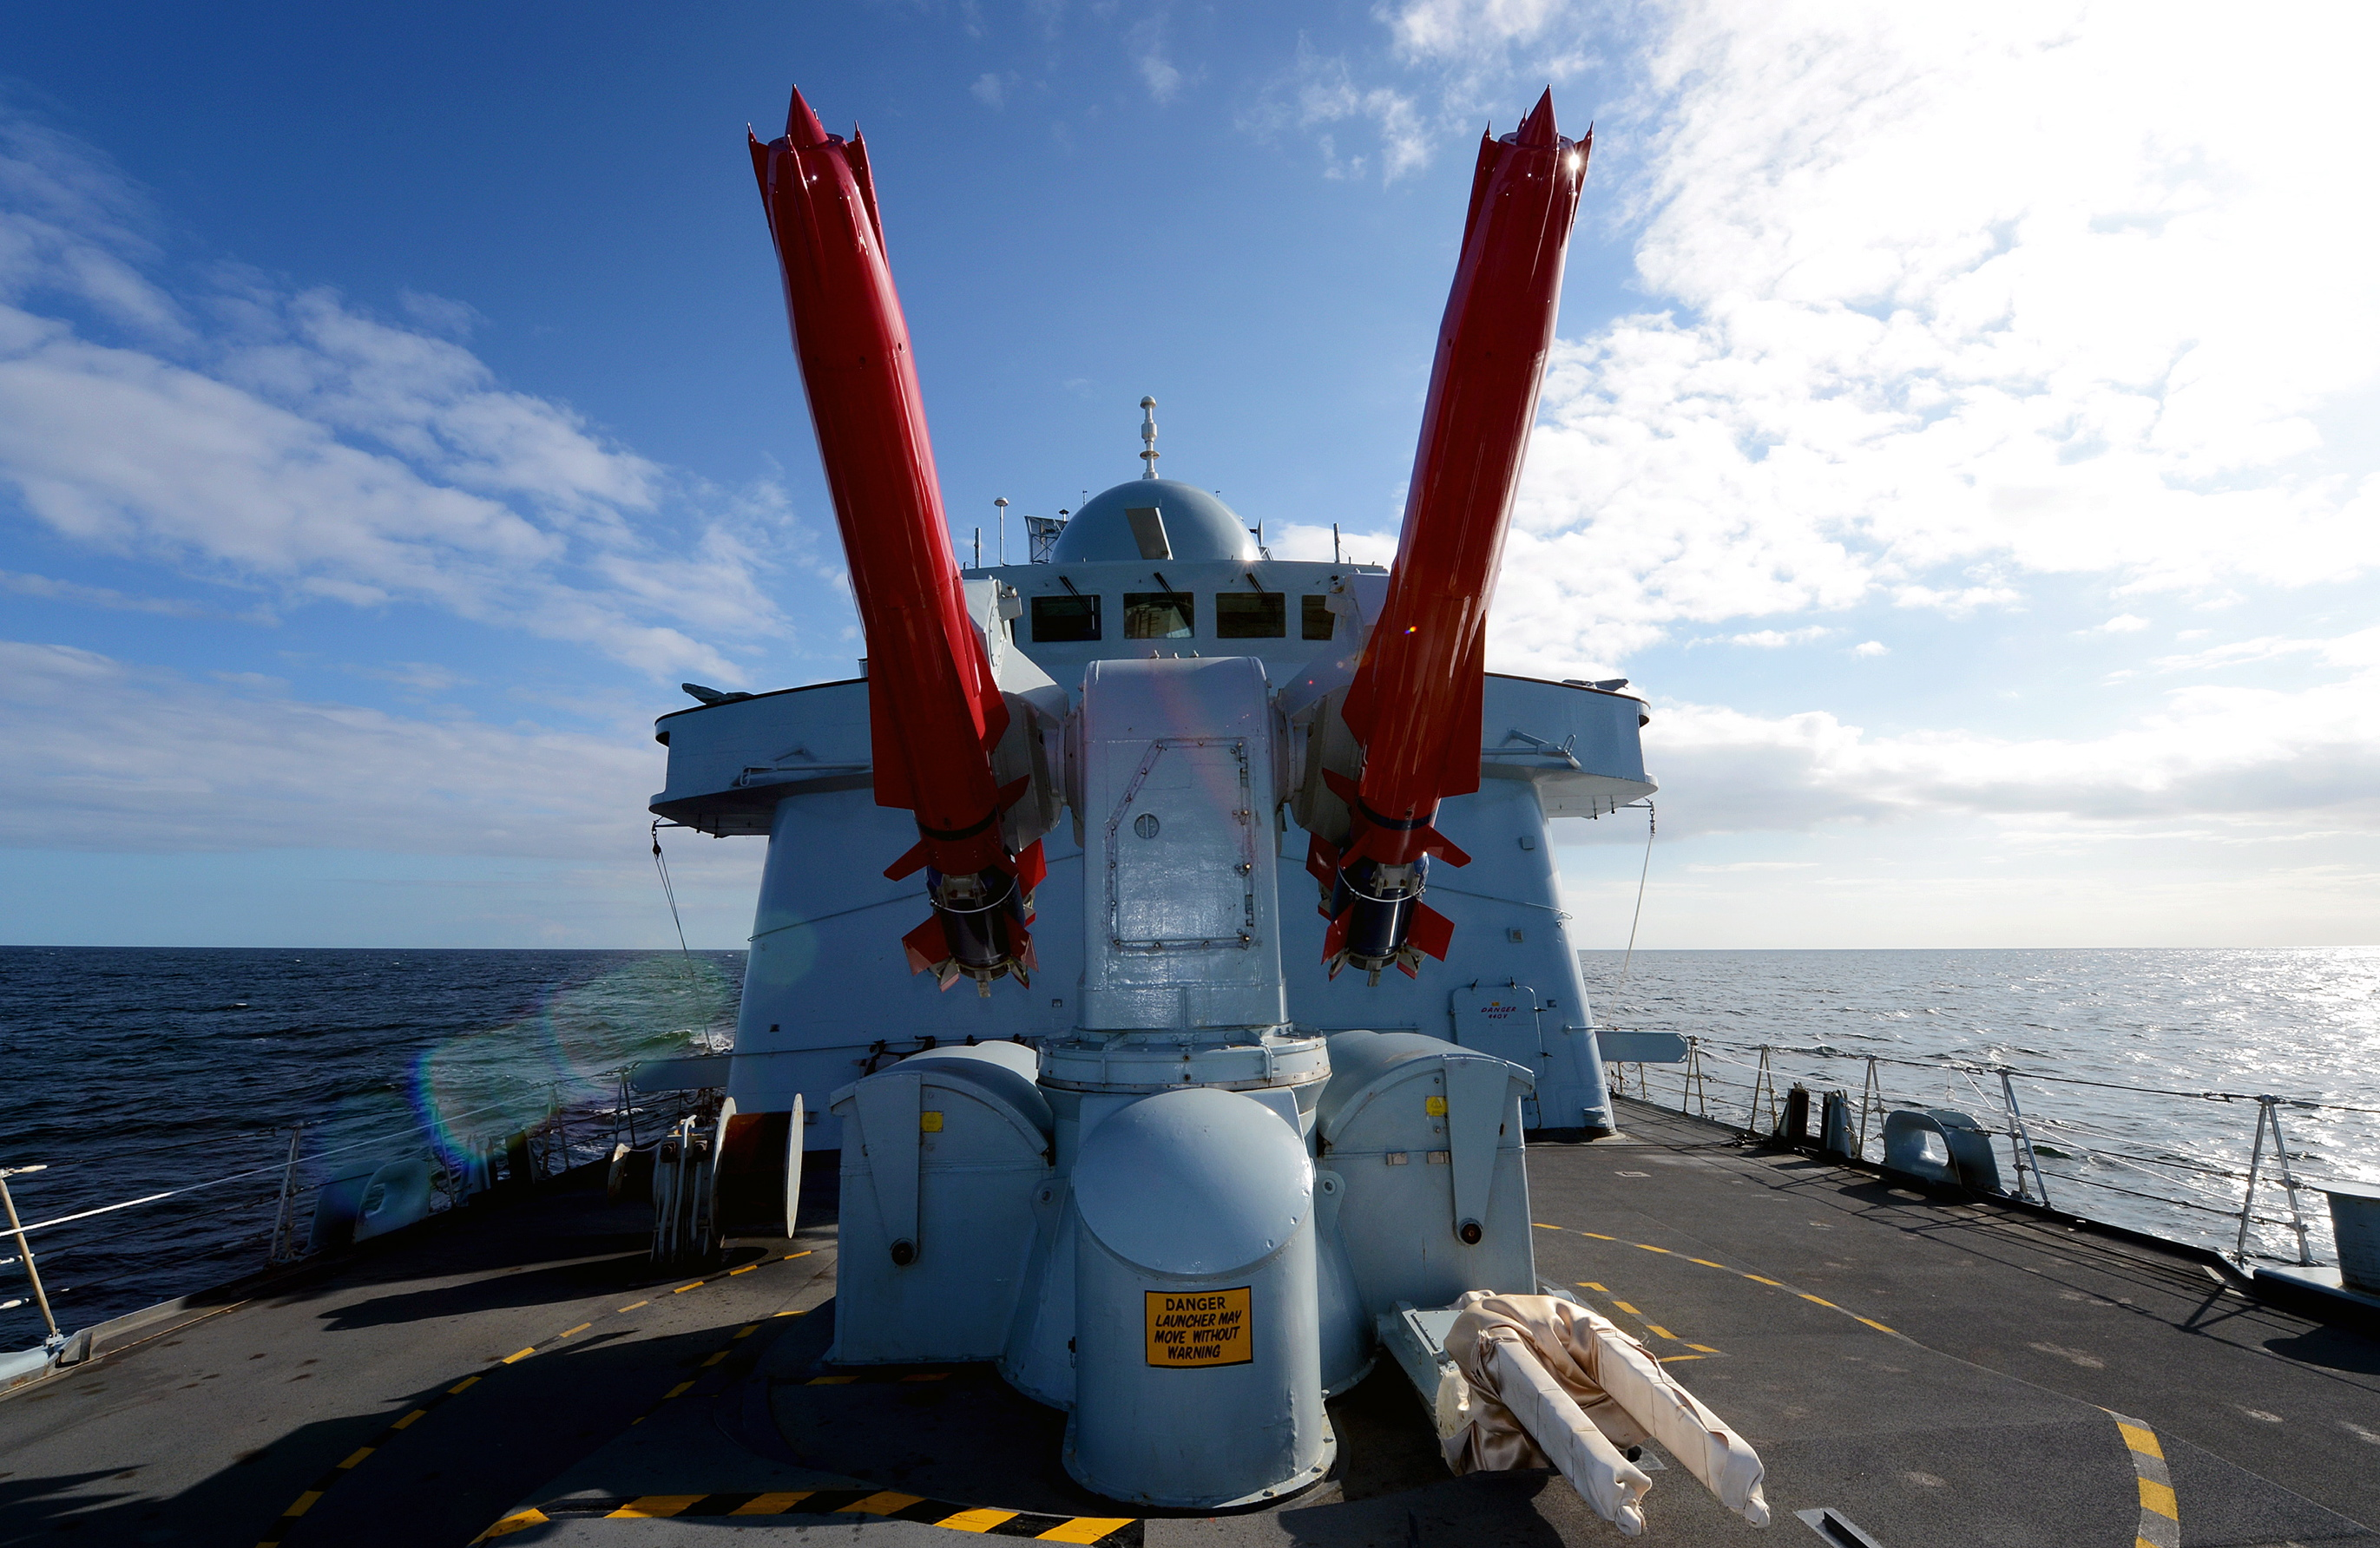 File:Drill Sea Dart Missiles Onboard HMS Edinburgh MOD ...